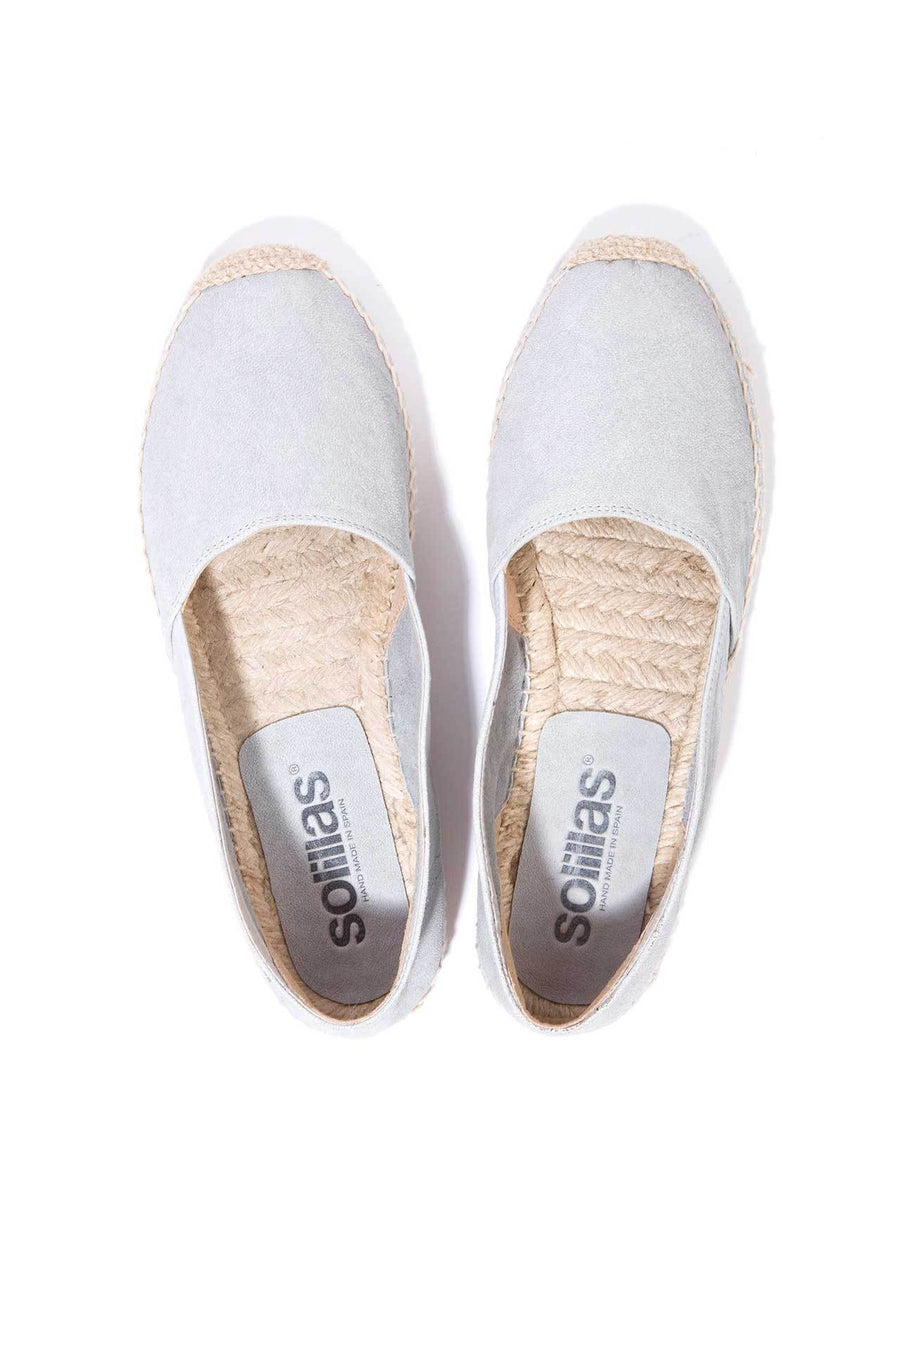 Roca - Nubuck Leather Espadrilles